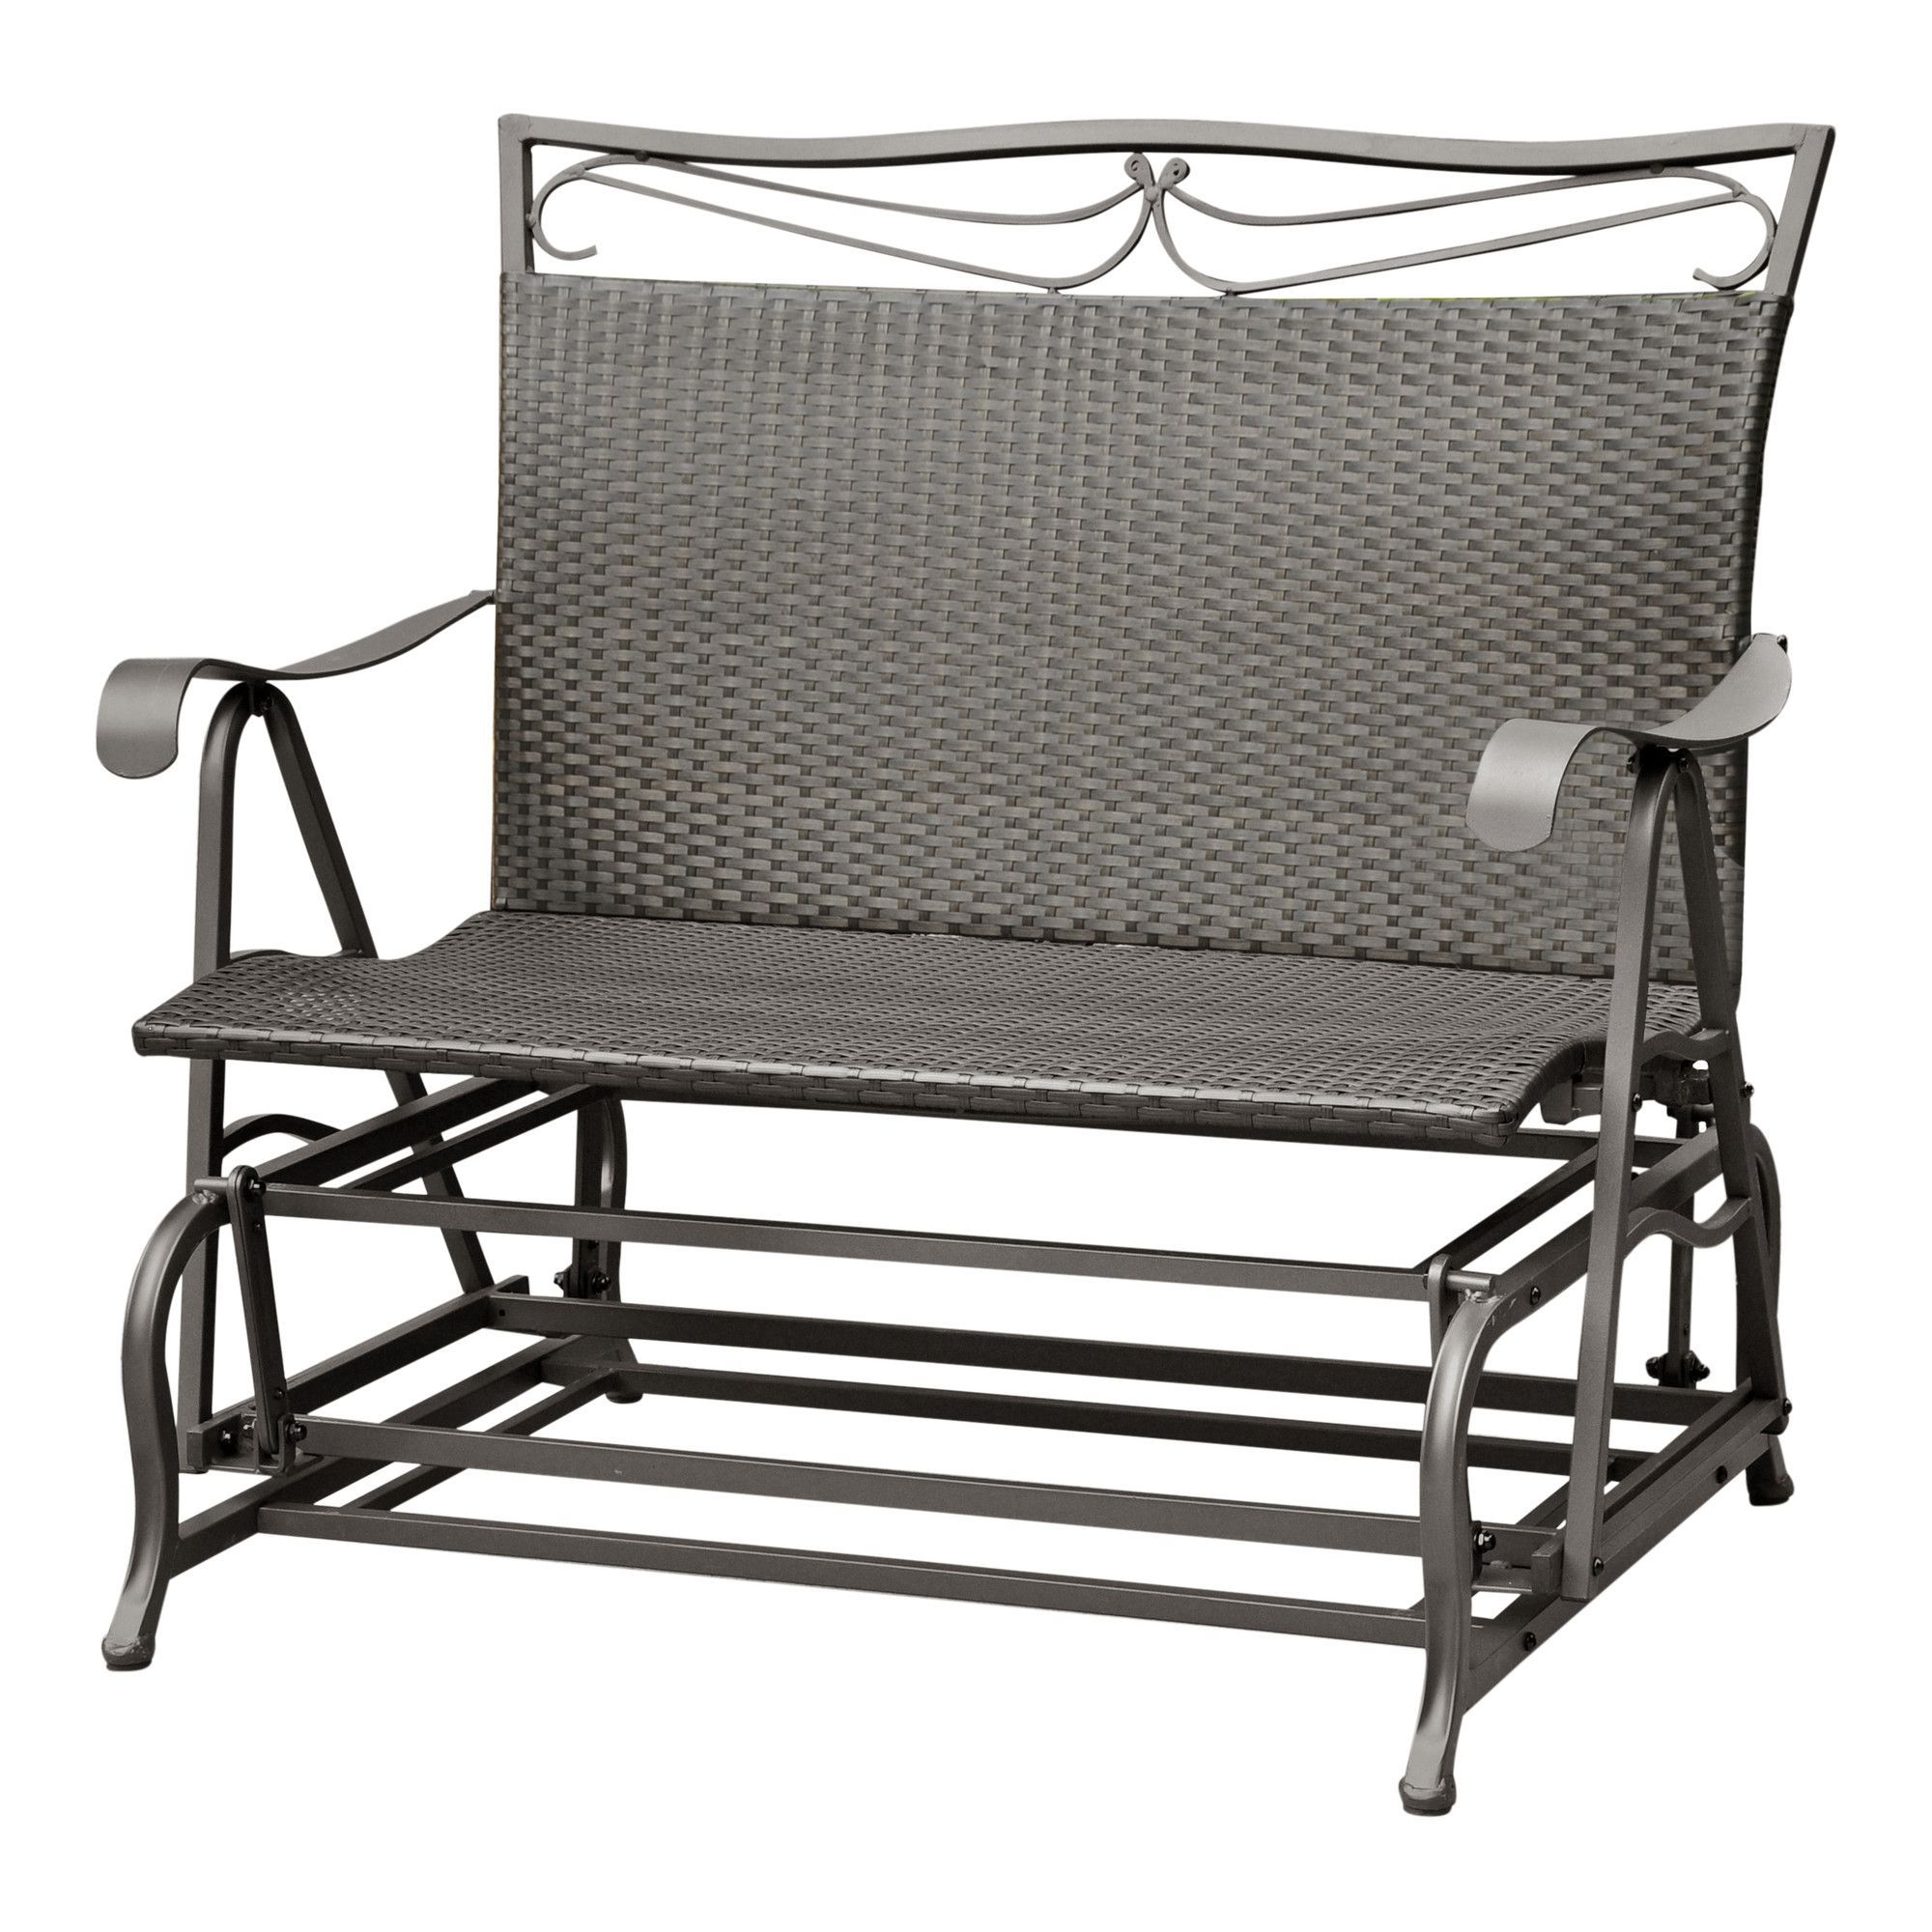 wicker of aluminum storage international bench ideas outdoor caravan barcelona resin